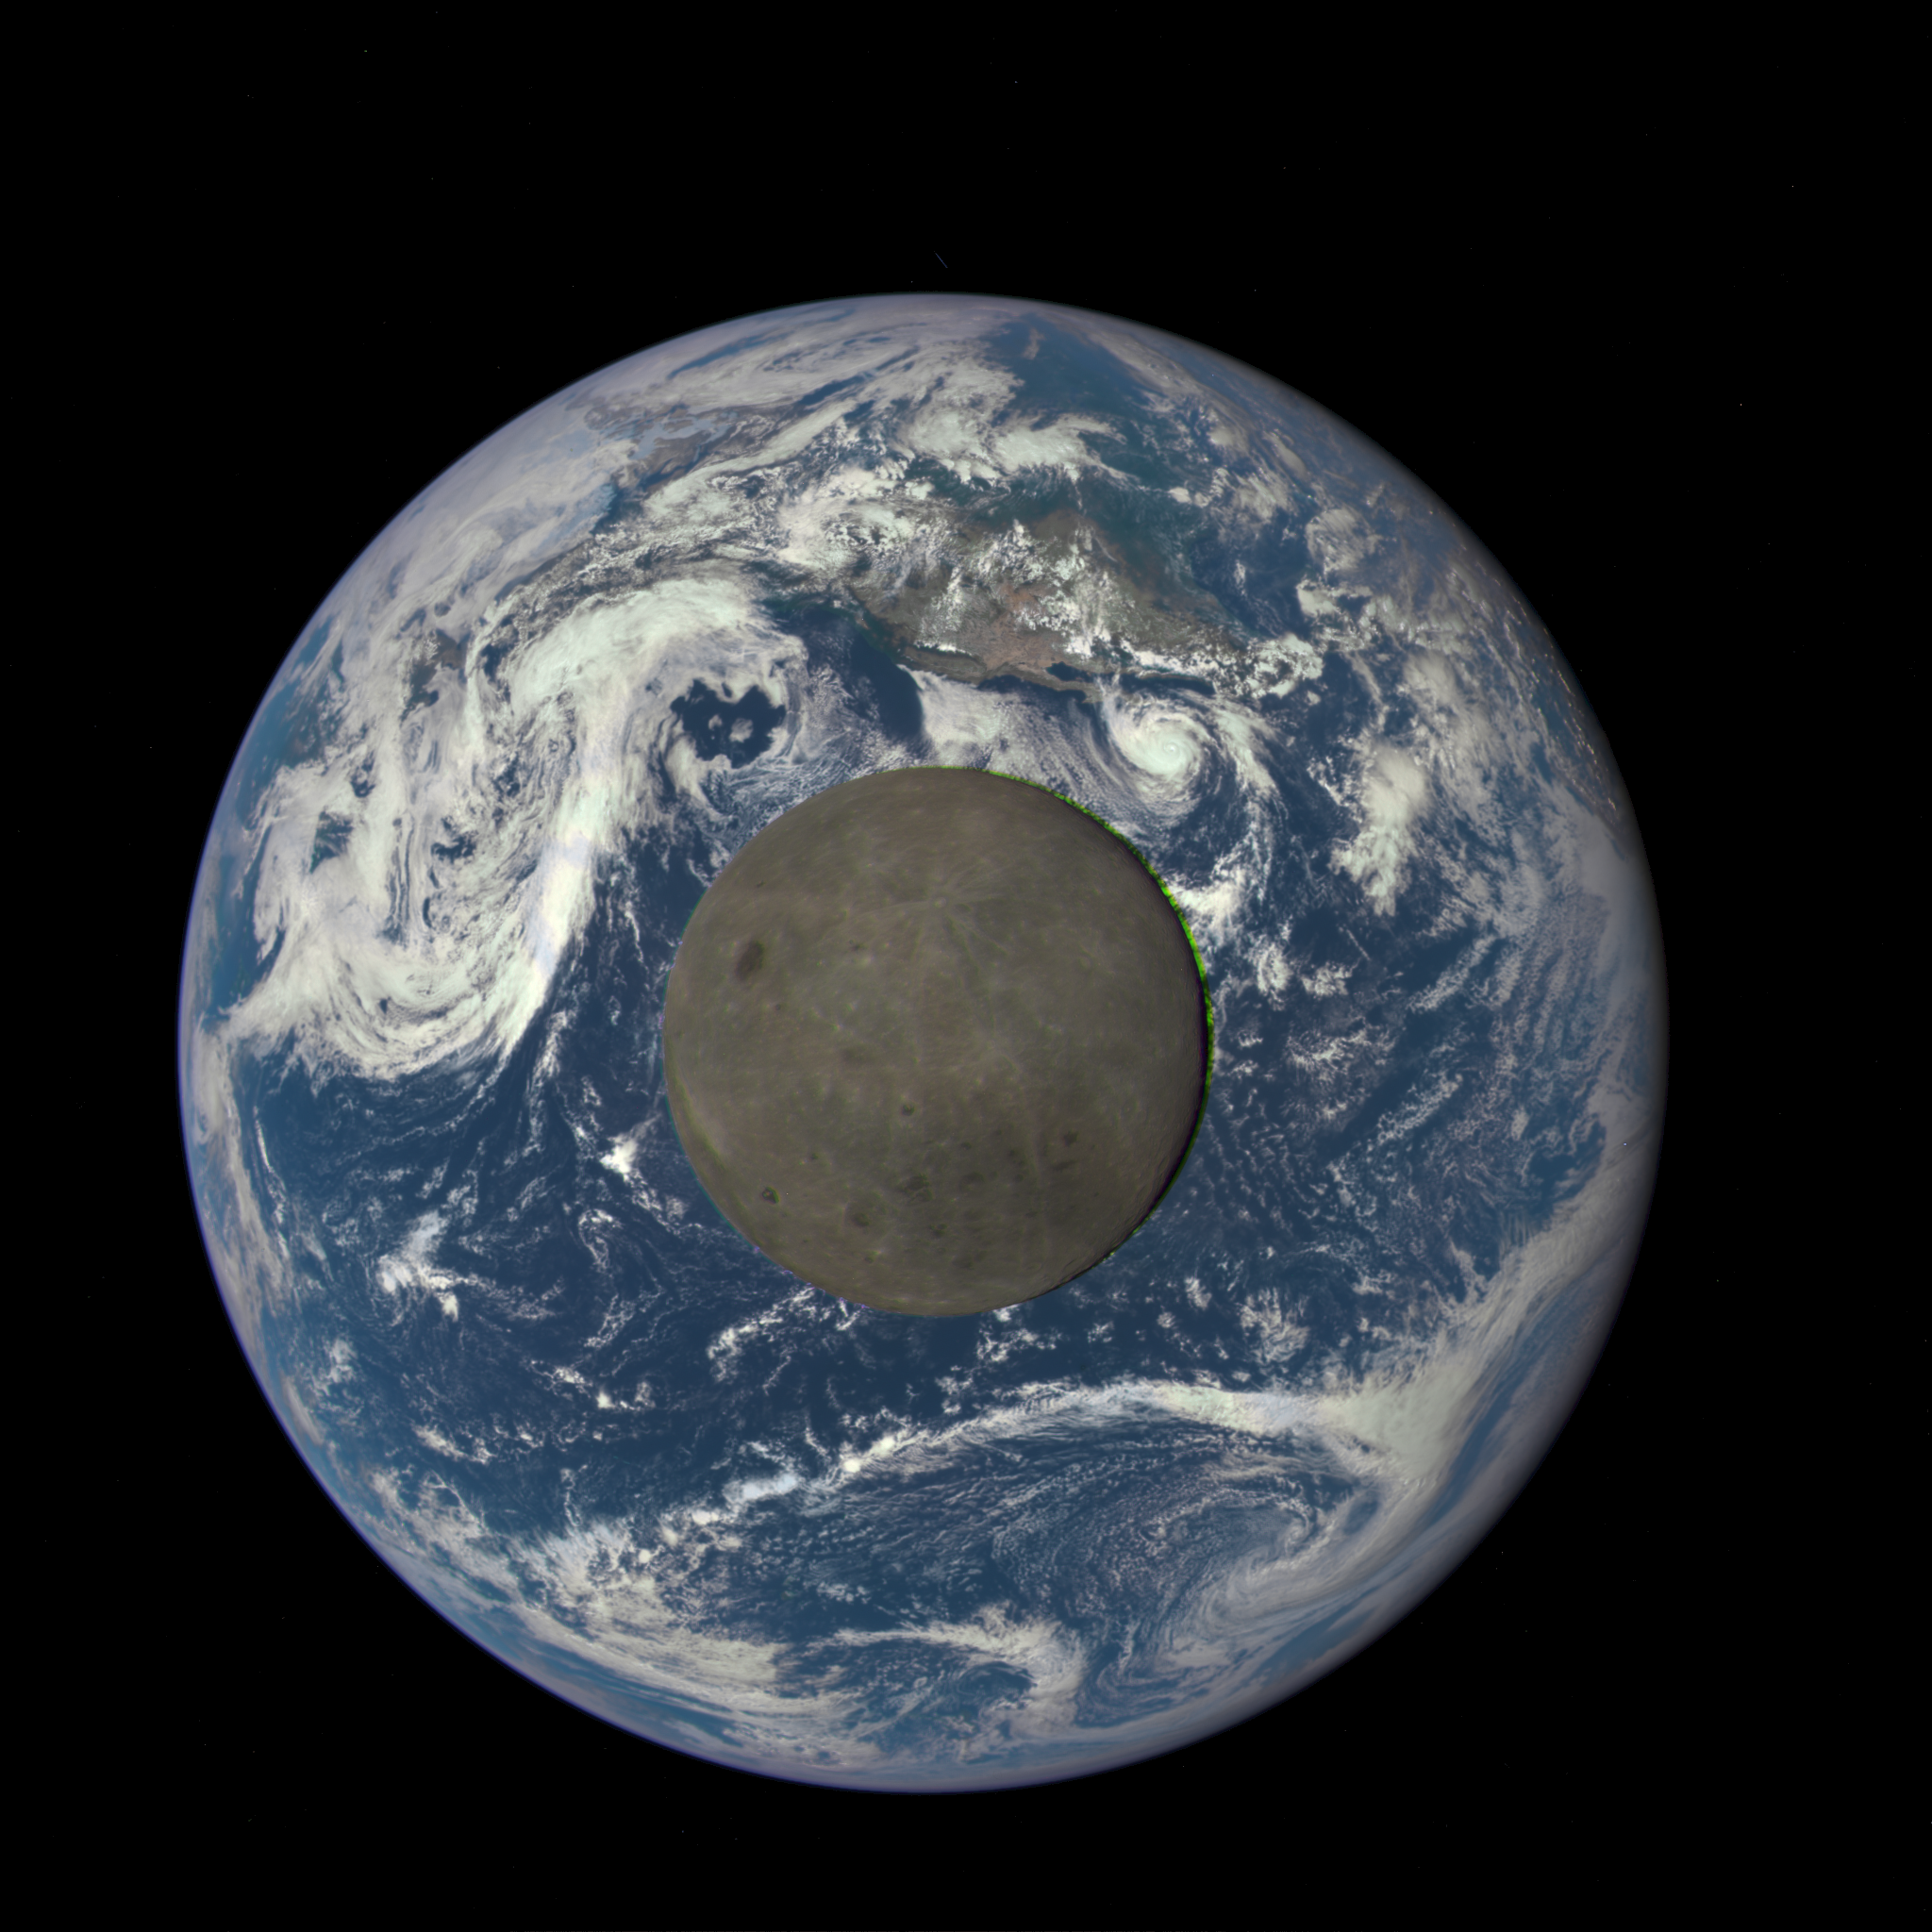 earth from the moon nasa-#38